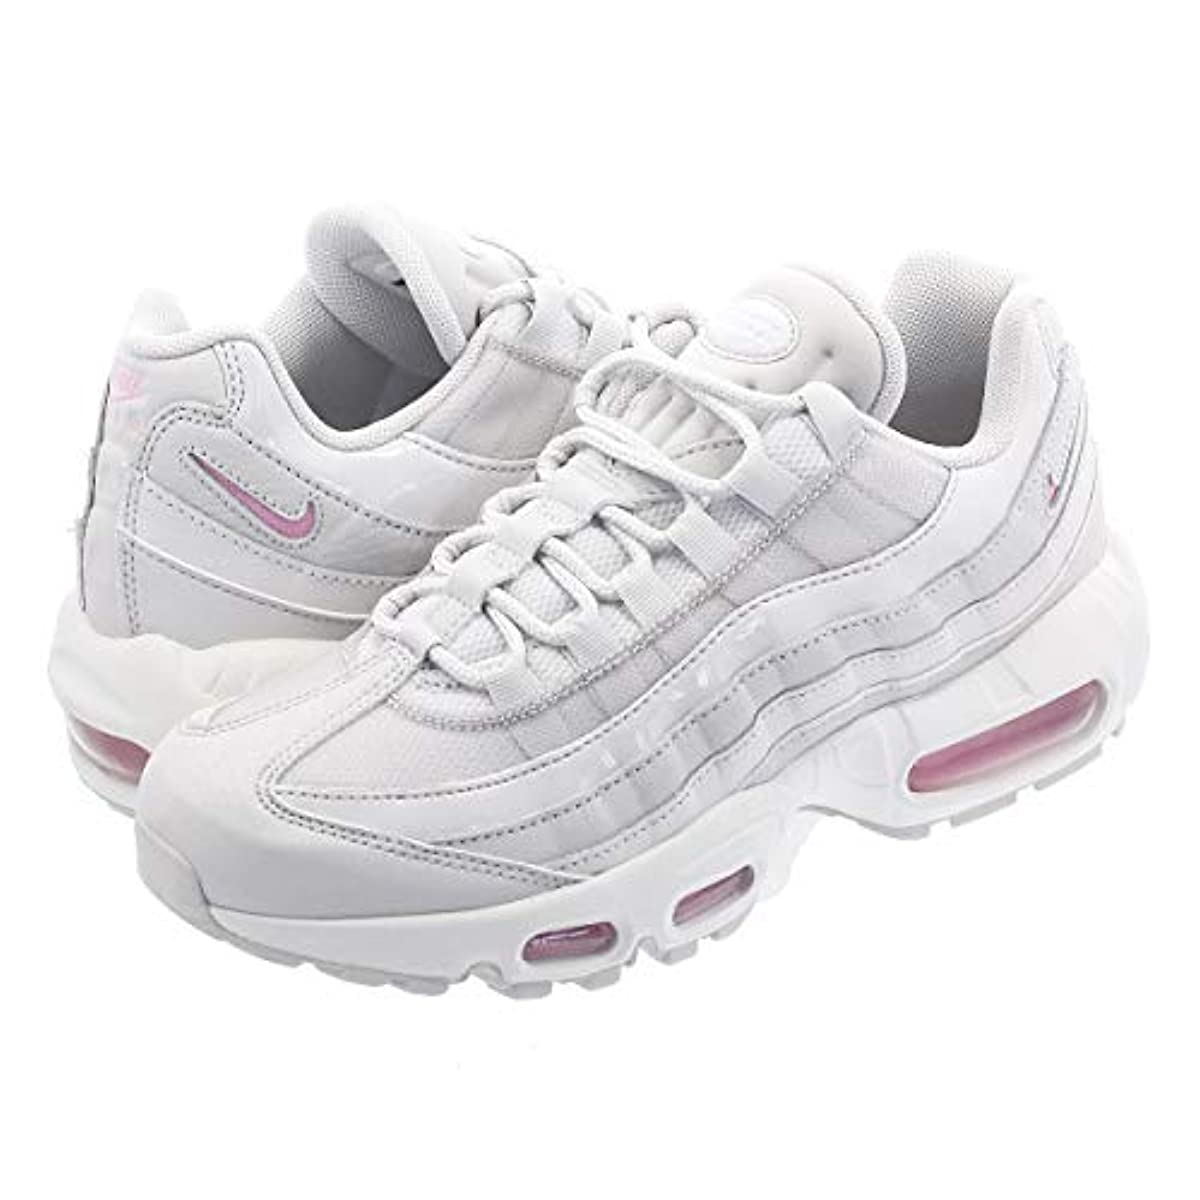 [해외] 나이키 WMNS AIR MAX 95 SE VAST GREY/PSYCHIC PINK/SUMMIT WHITE